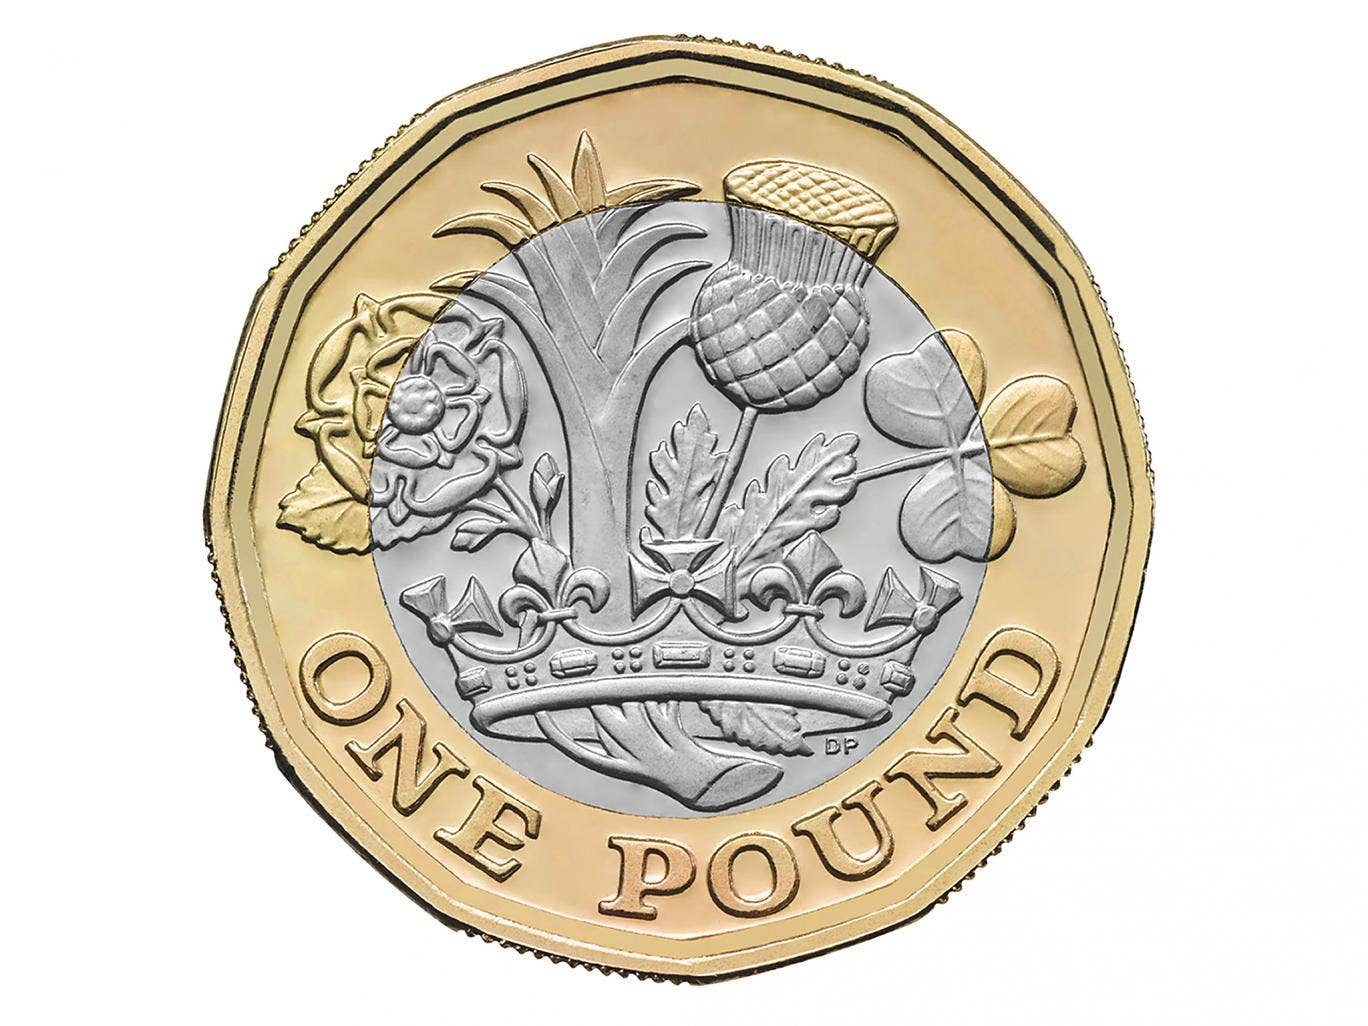 What does a coin look like